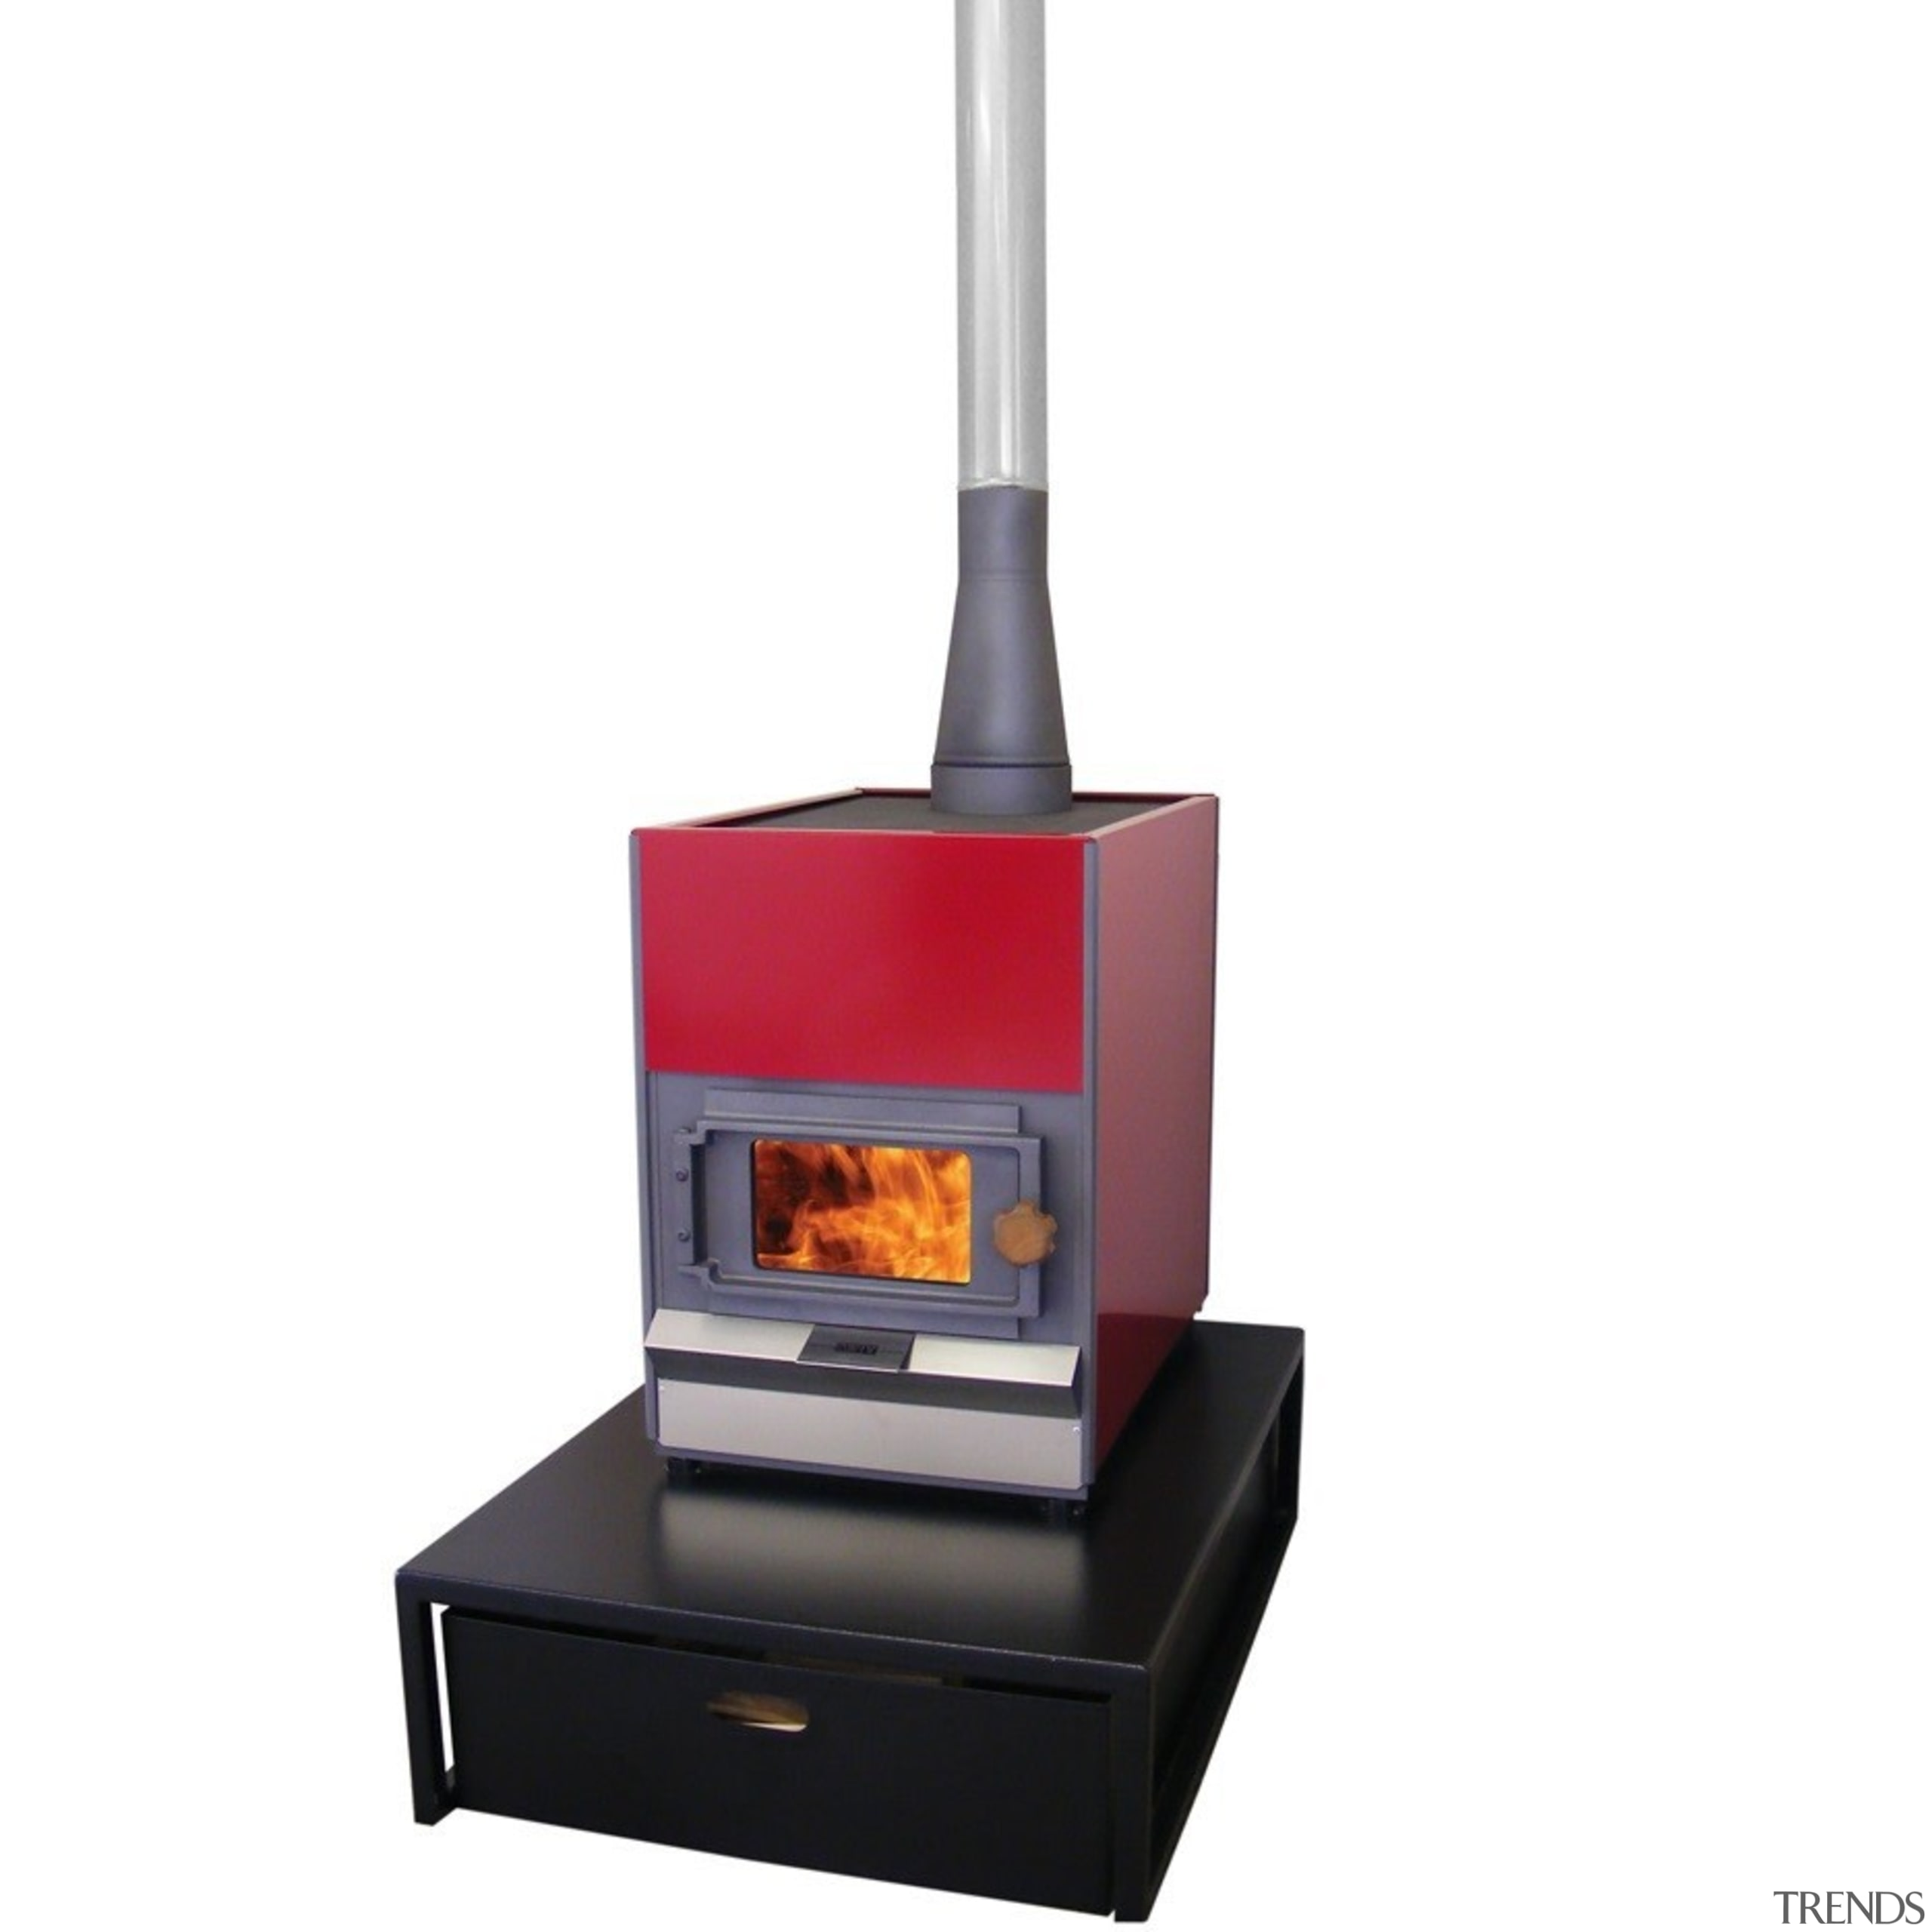 Pyroclassic IV on a large raised hearth and product, white